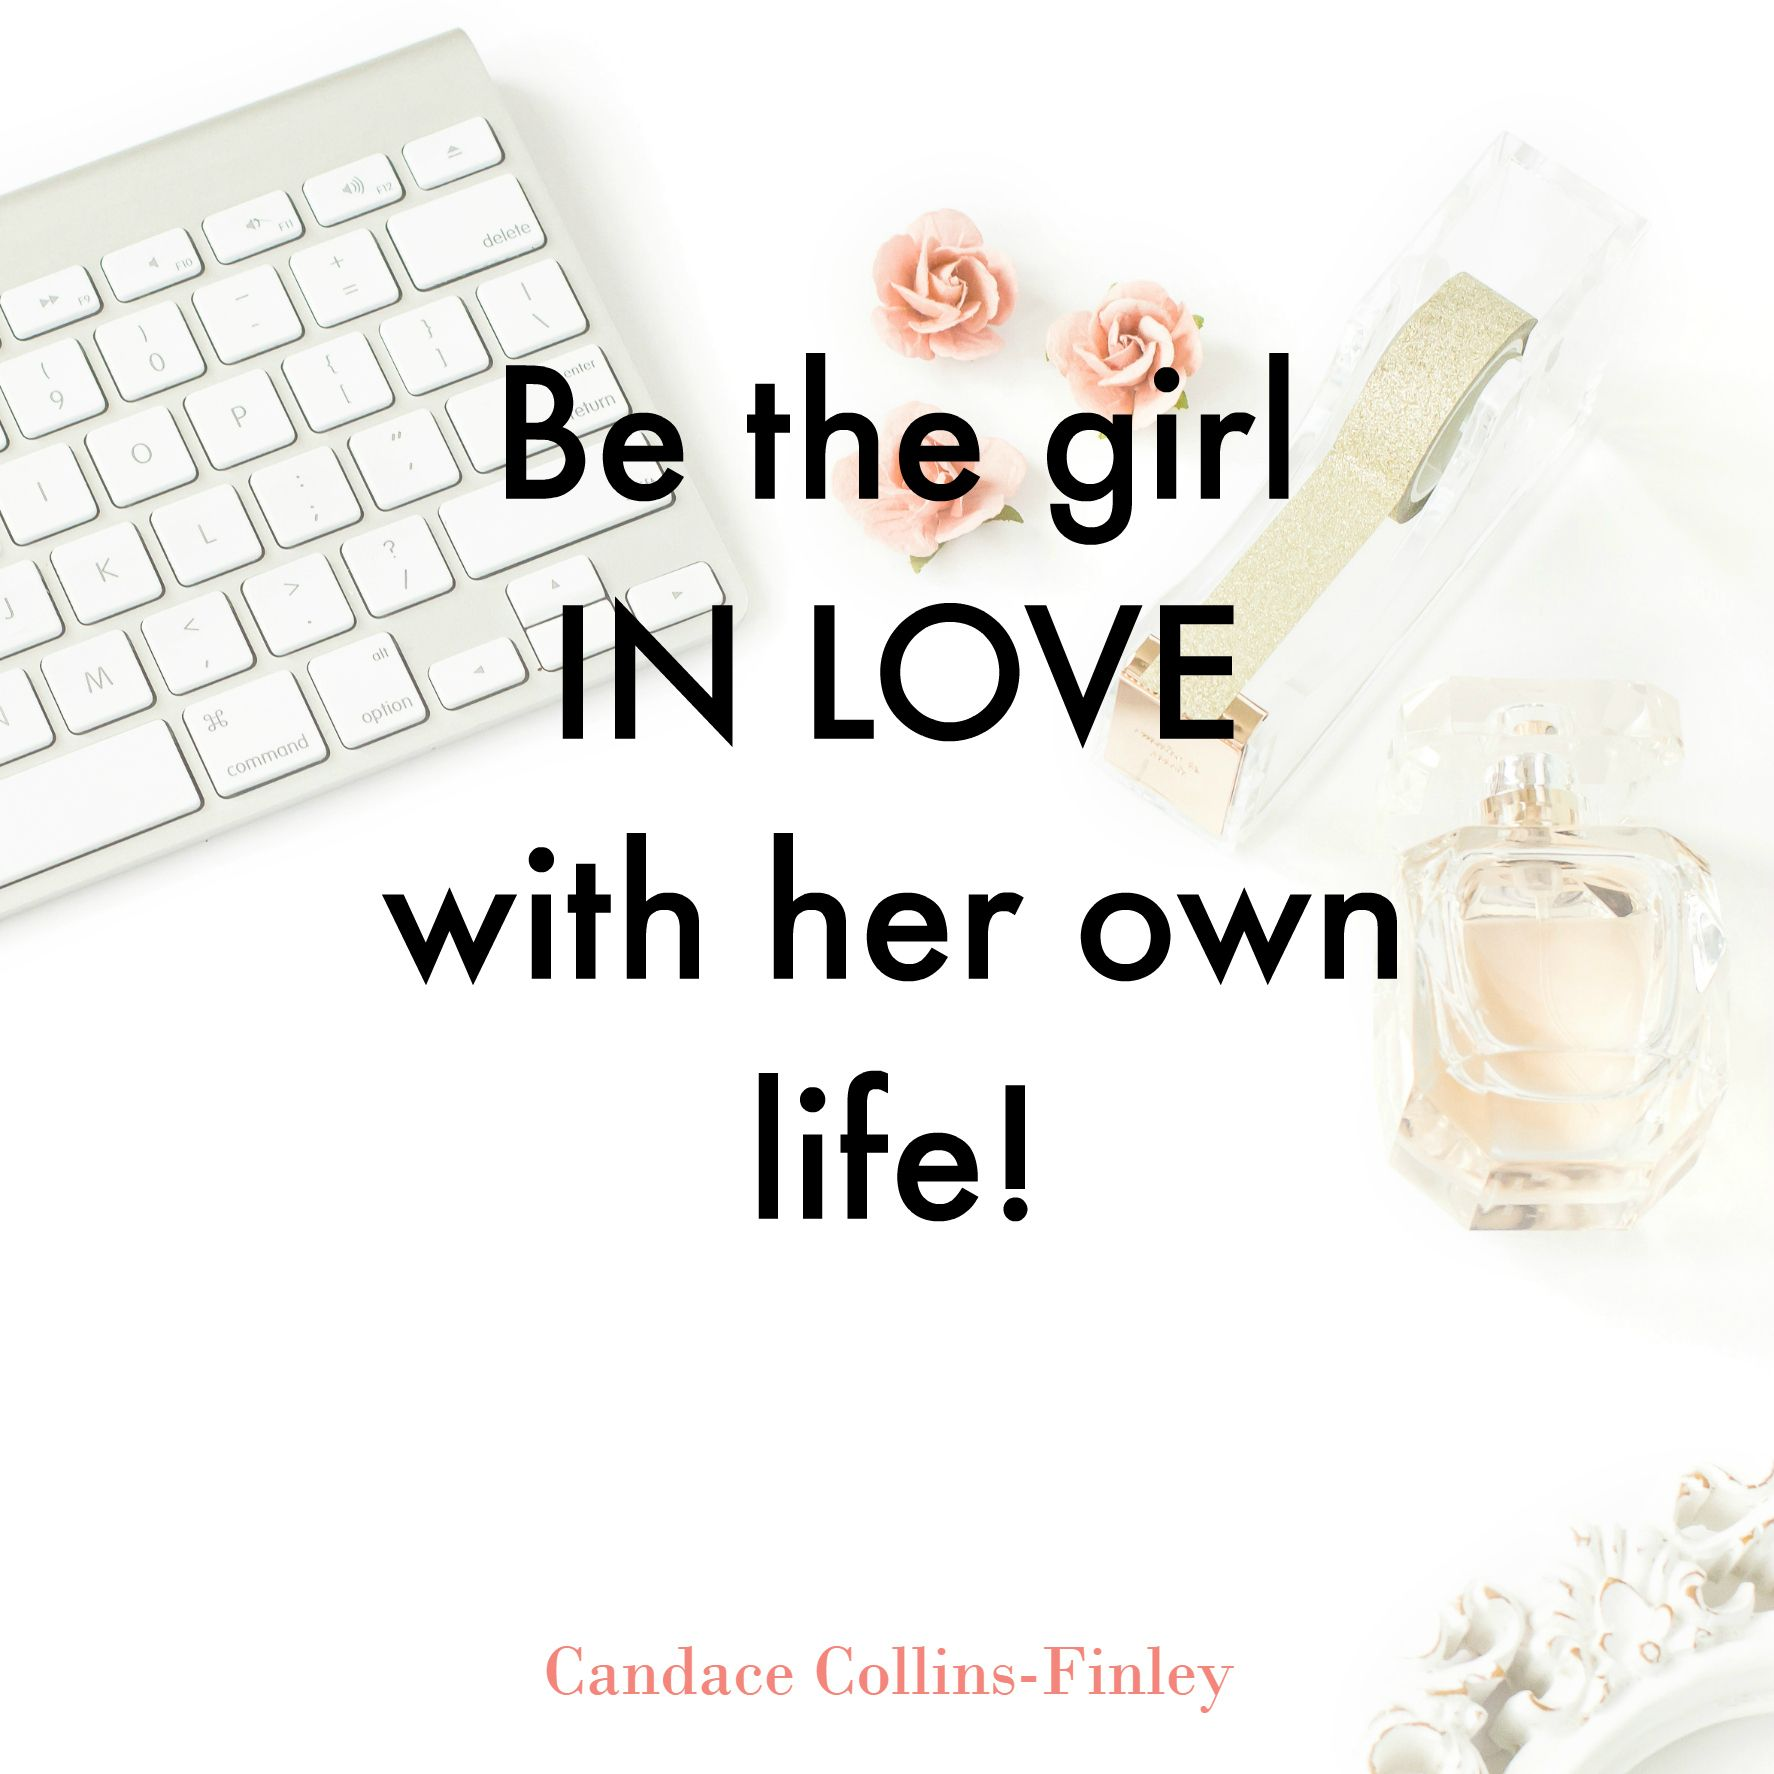 Be the girl in LOVE with her own life! - Visit for more articles